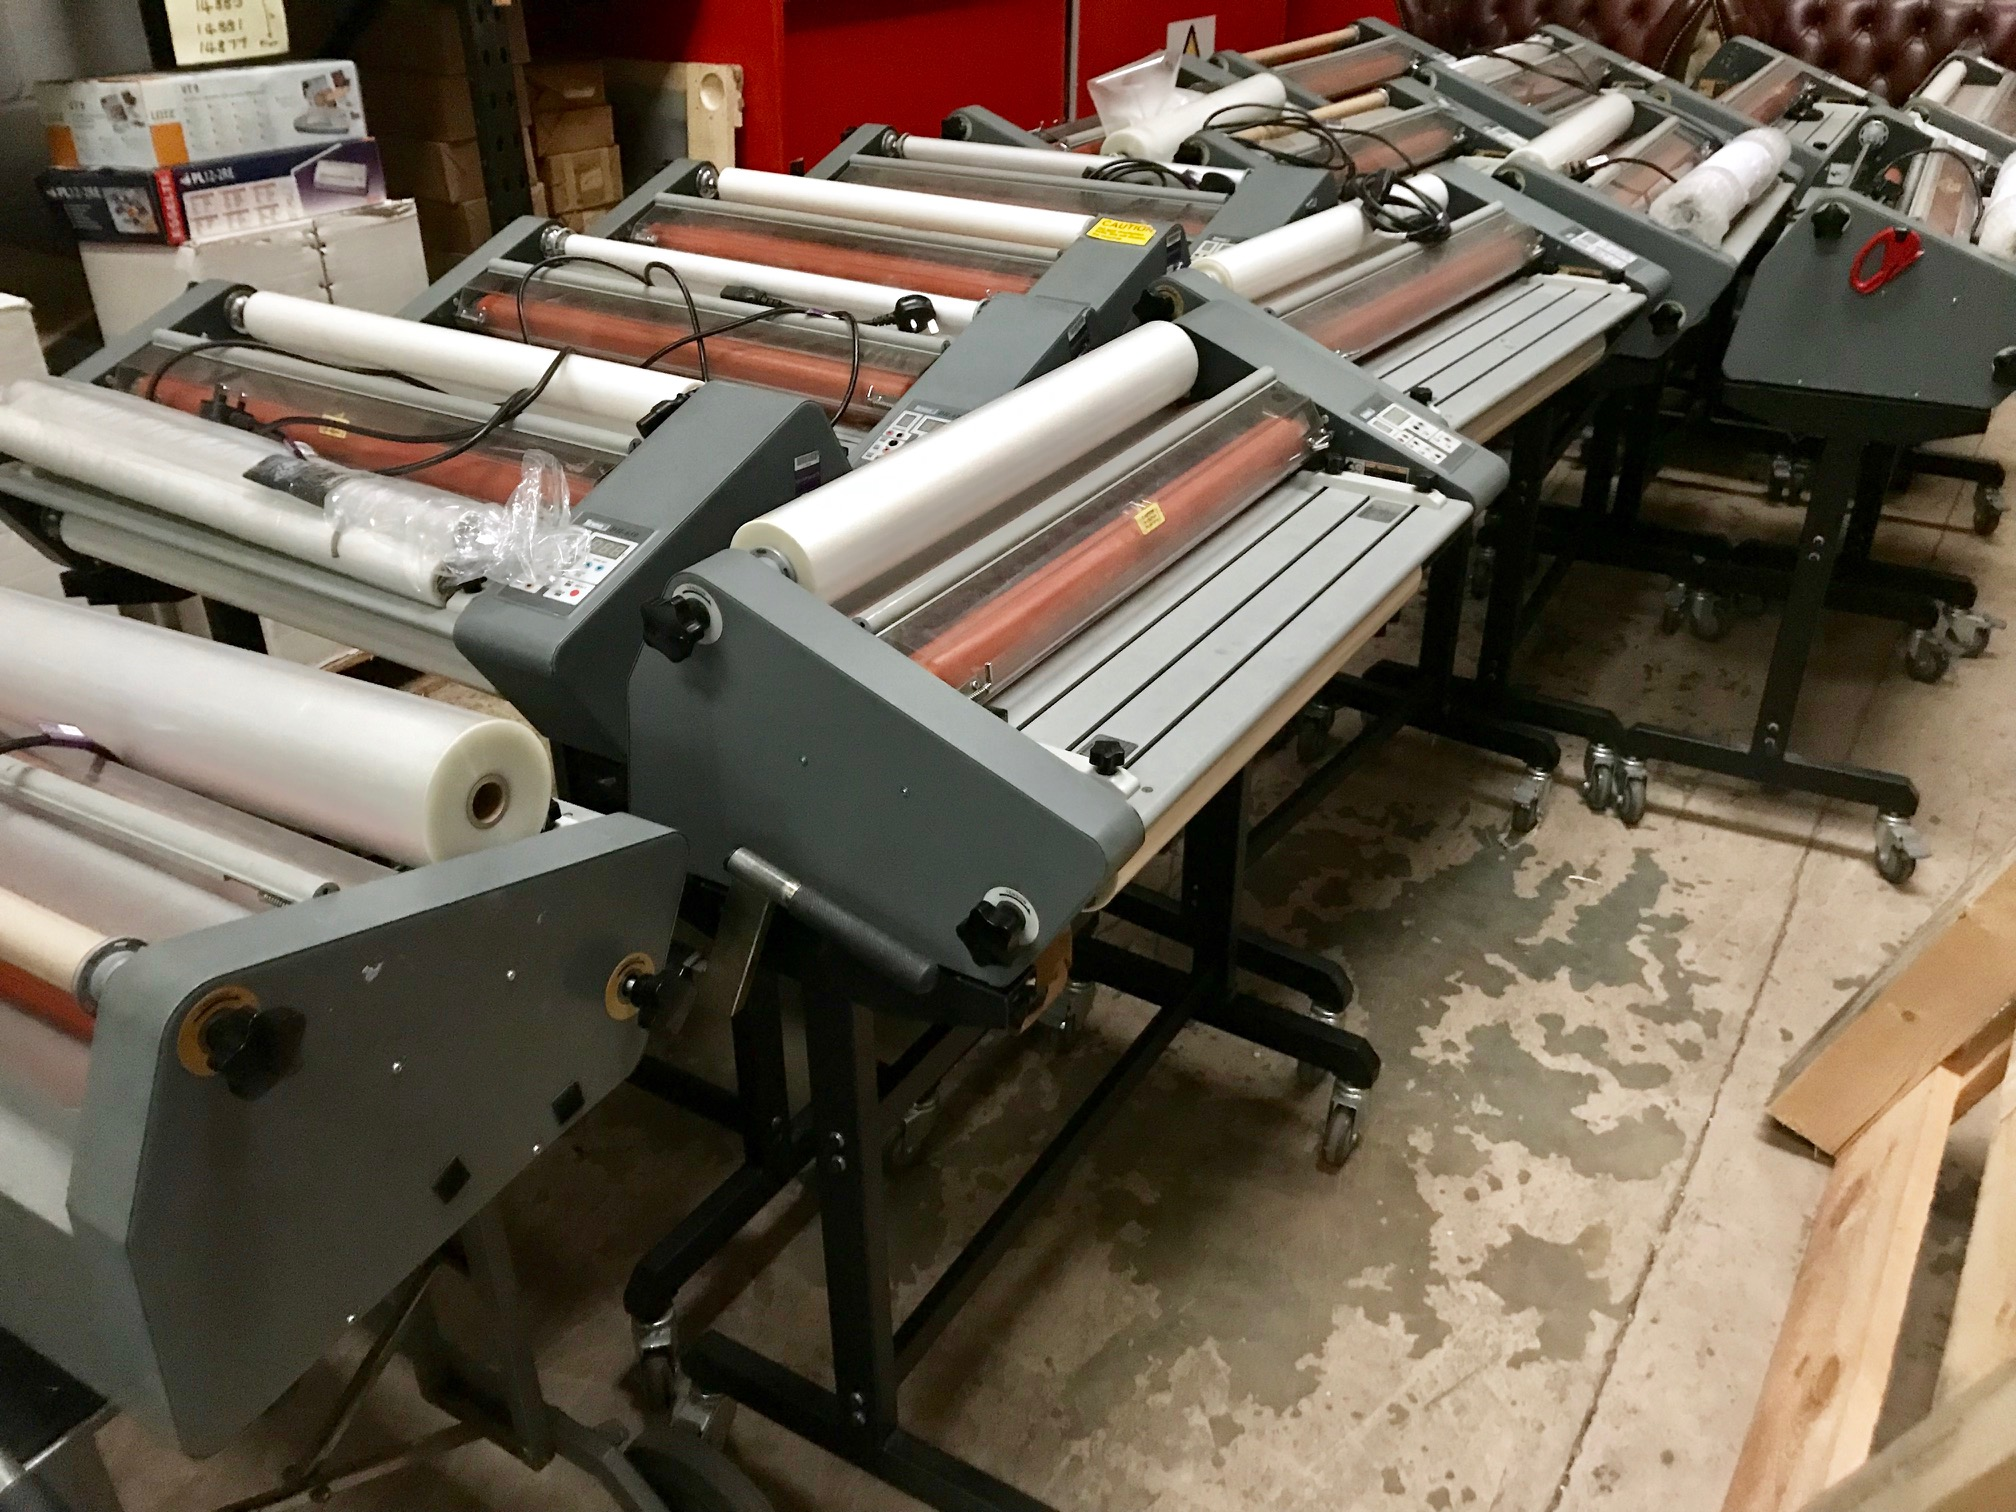 Quality A1 Linea DH650 Roll Laminators Now Available At Lowest Online Prices - Recovered From Ex-Stationery Chain